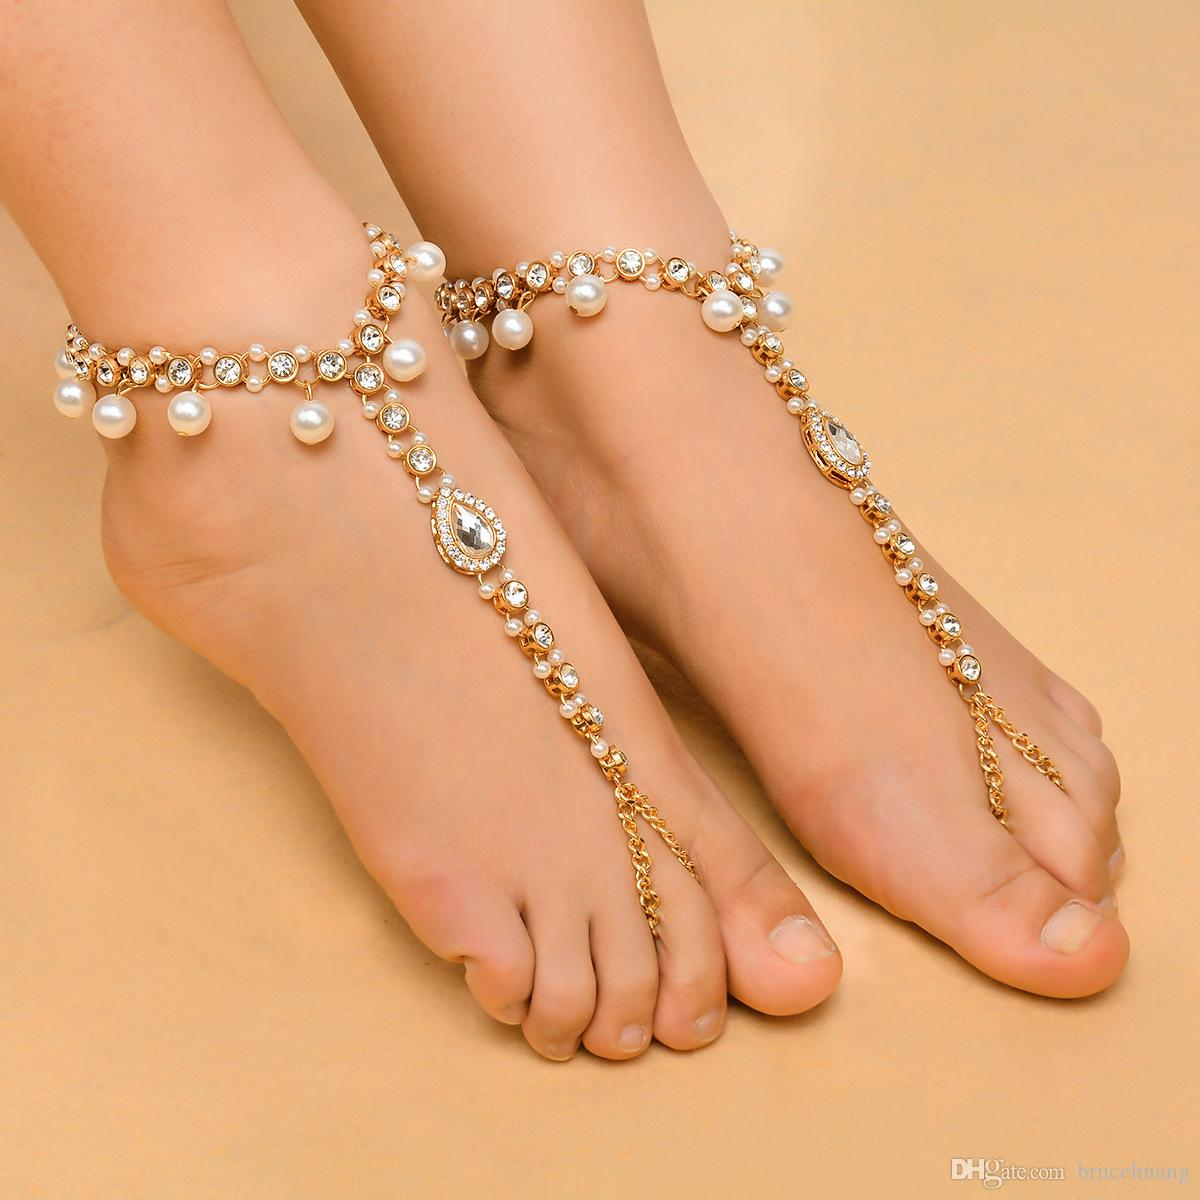 2019 Fashion Ankle Bracelet Wedding Barefoot Sandals Beach Foot Jewelry Sexy  Pie Leg Chain Female Boho Crystal Anklet From Brucehuang 6c64d892fa63